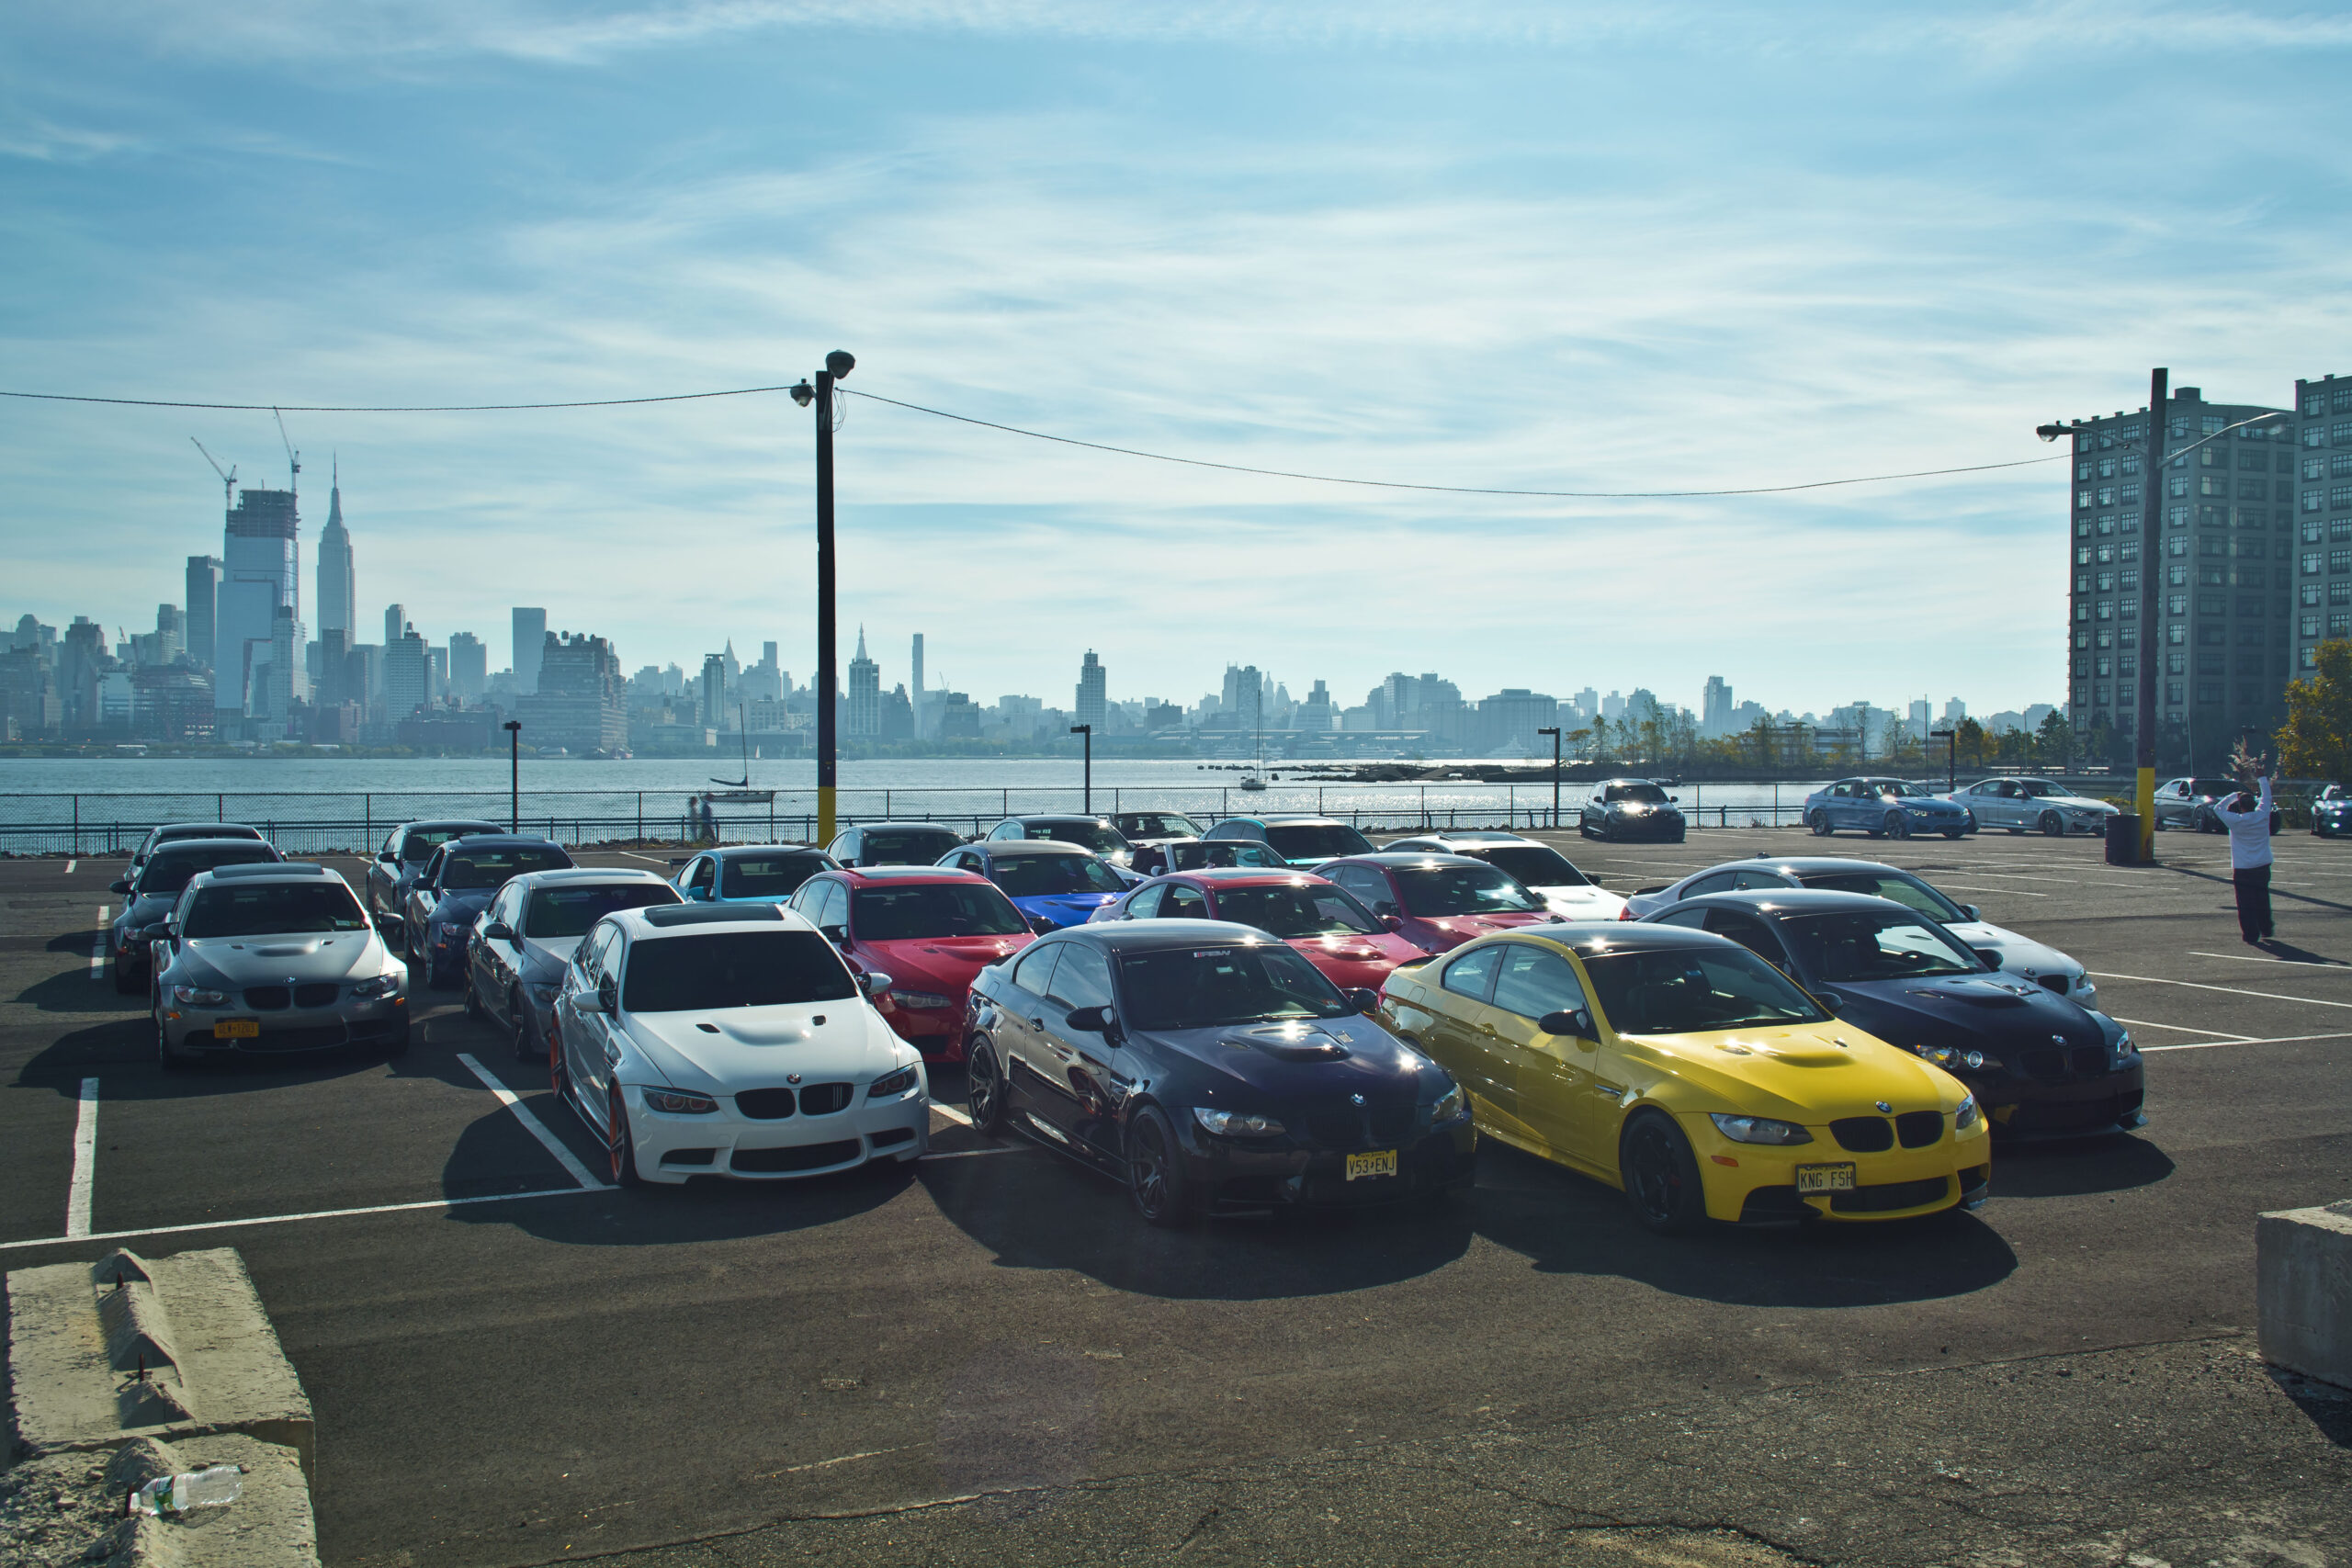 The history of the BMW M3 Fall Meet and Cruise